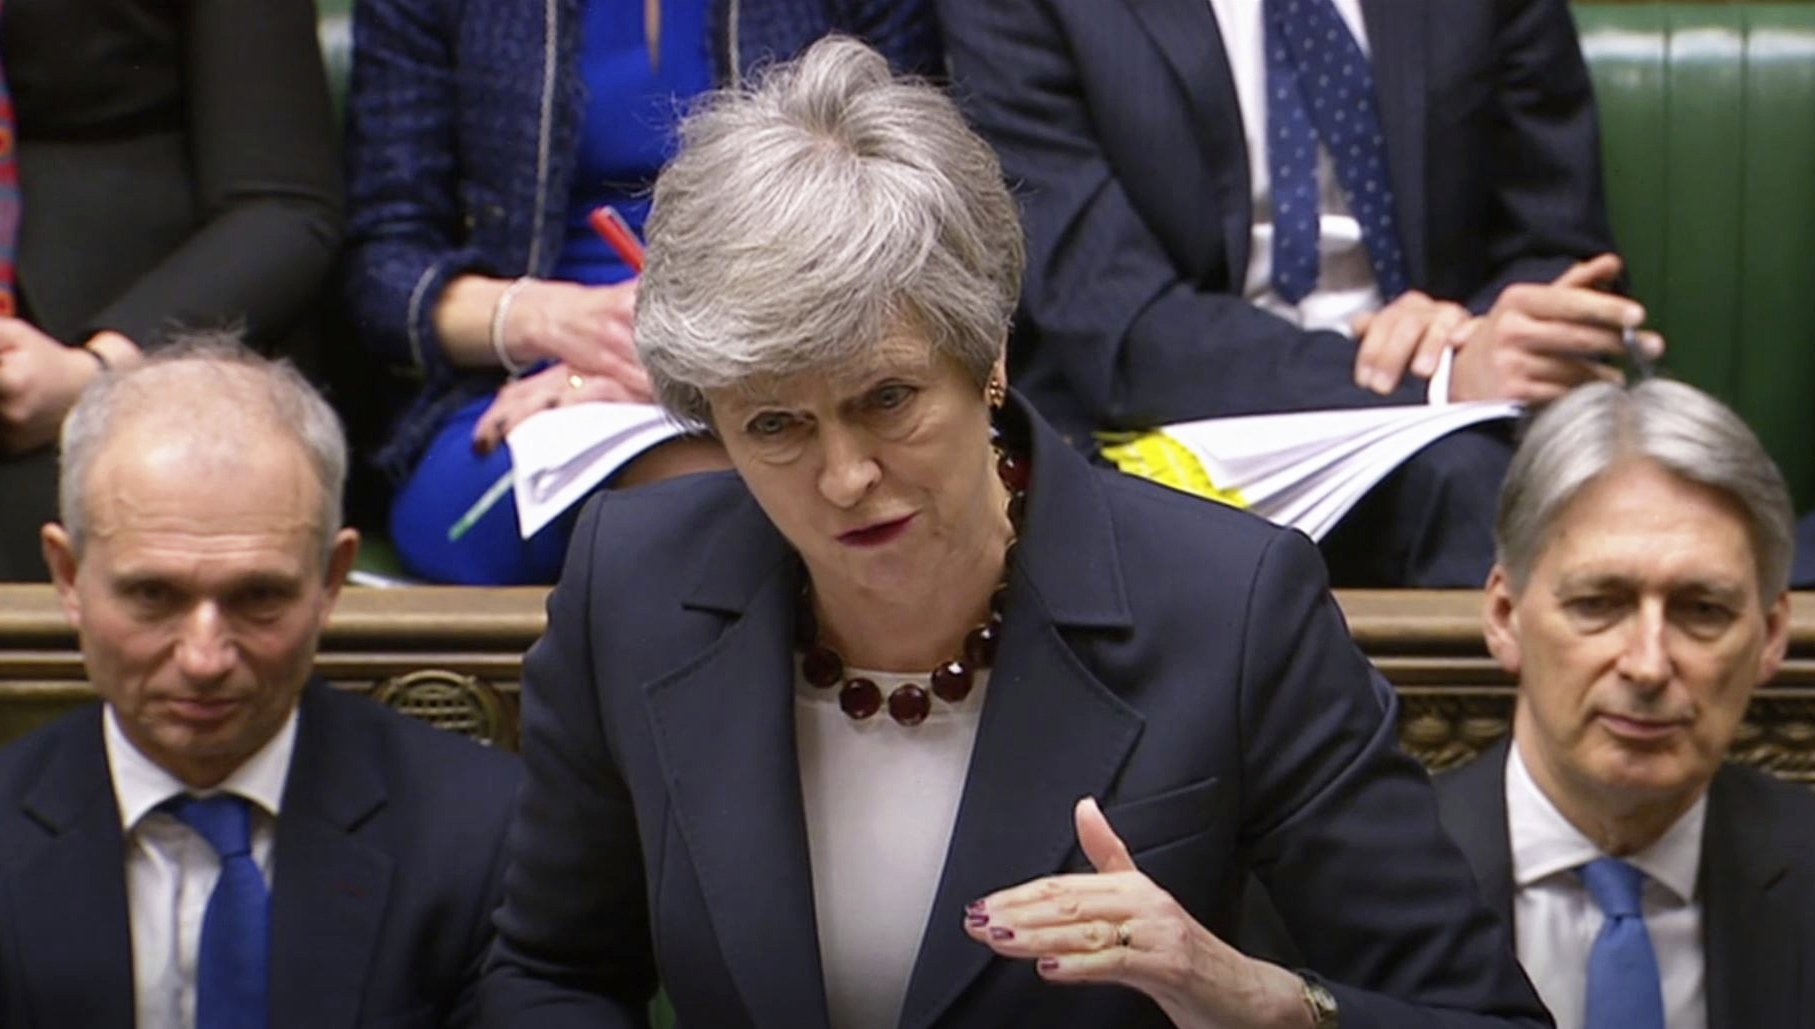 The Latest: May concedes desire for 'new leadership'